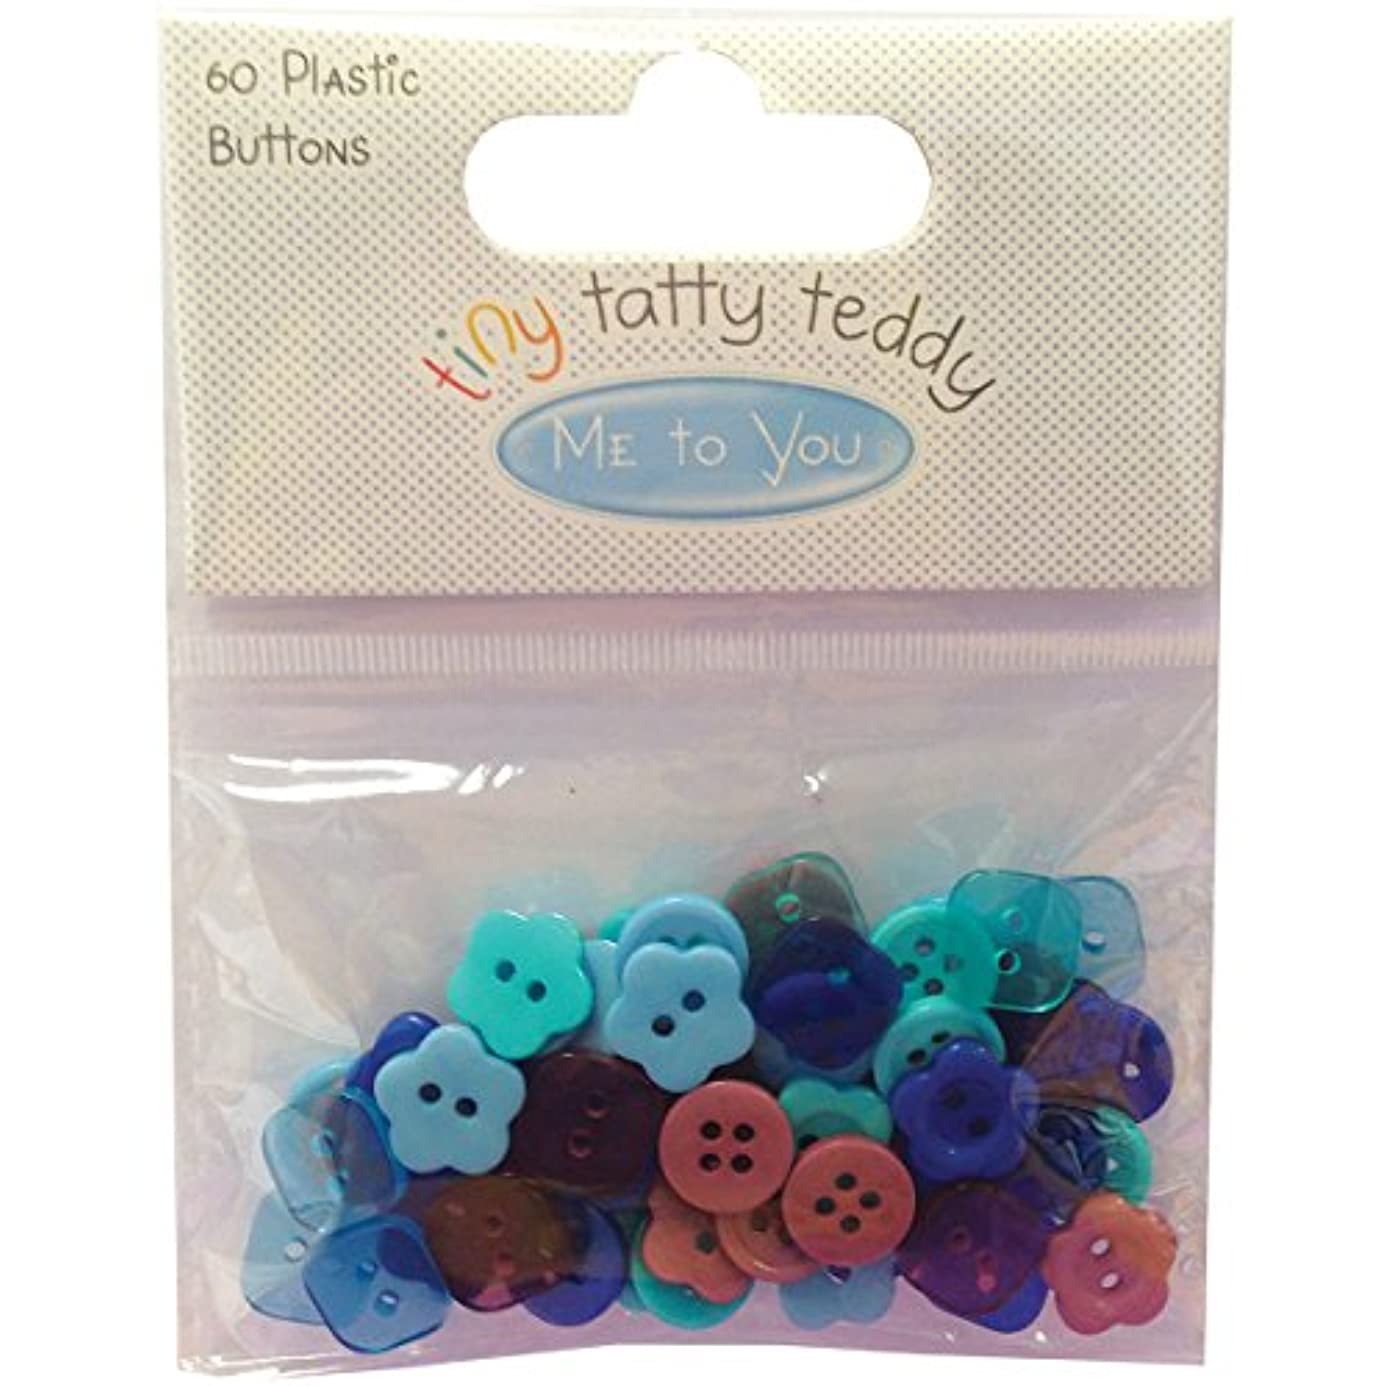 Trimcraft Tiny Tatty Teddy Boy Plastic Buttons (60 Pack) obd1028797